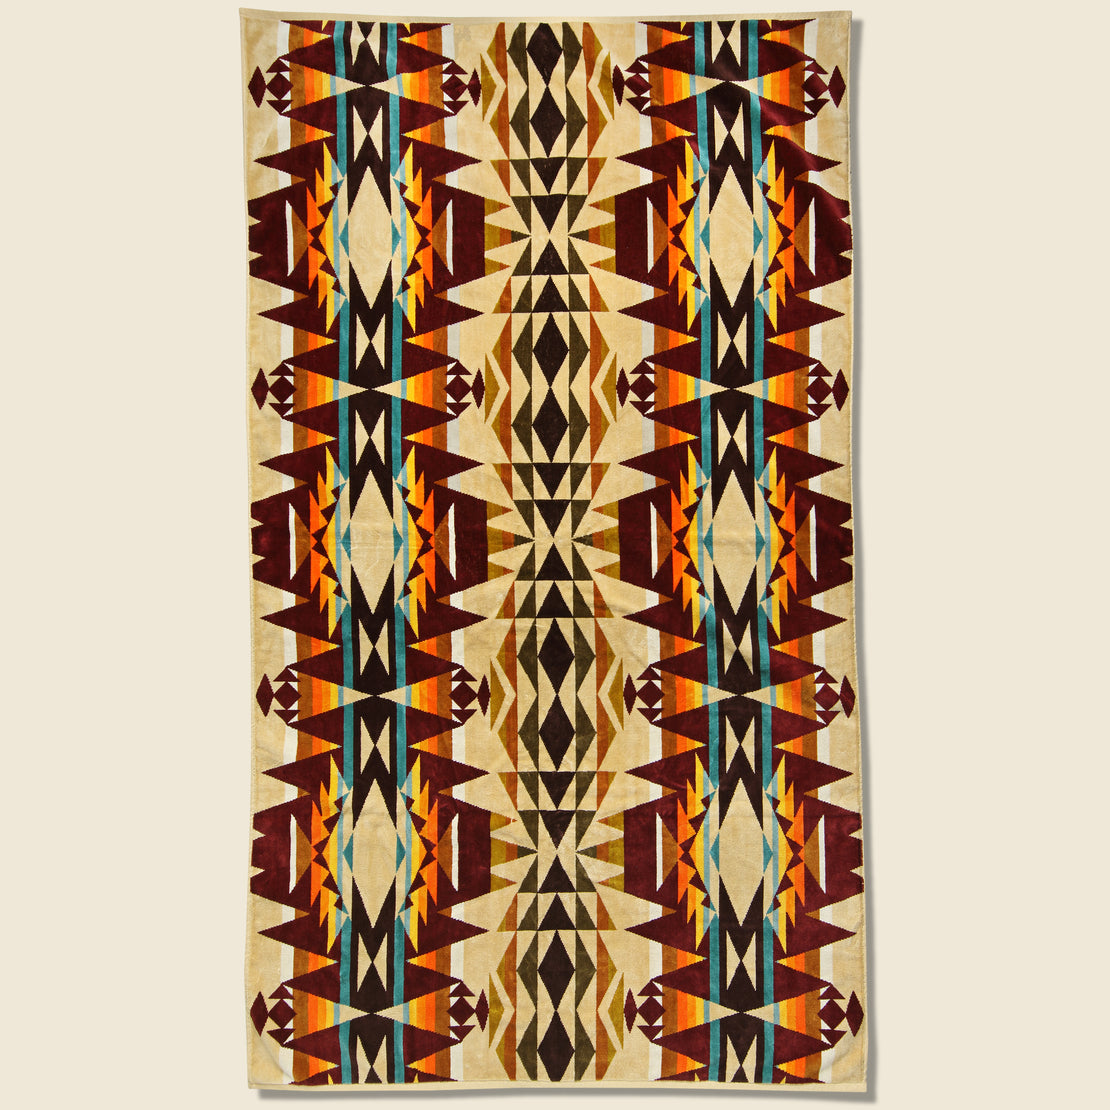 Pendleton Crescent Butte Towel - Beige